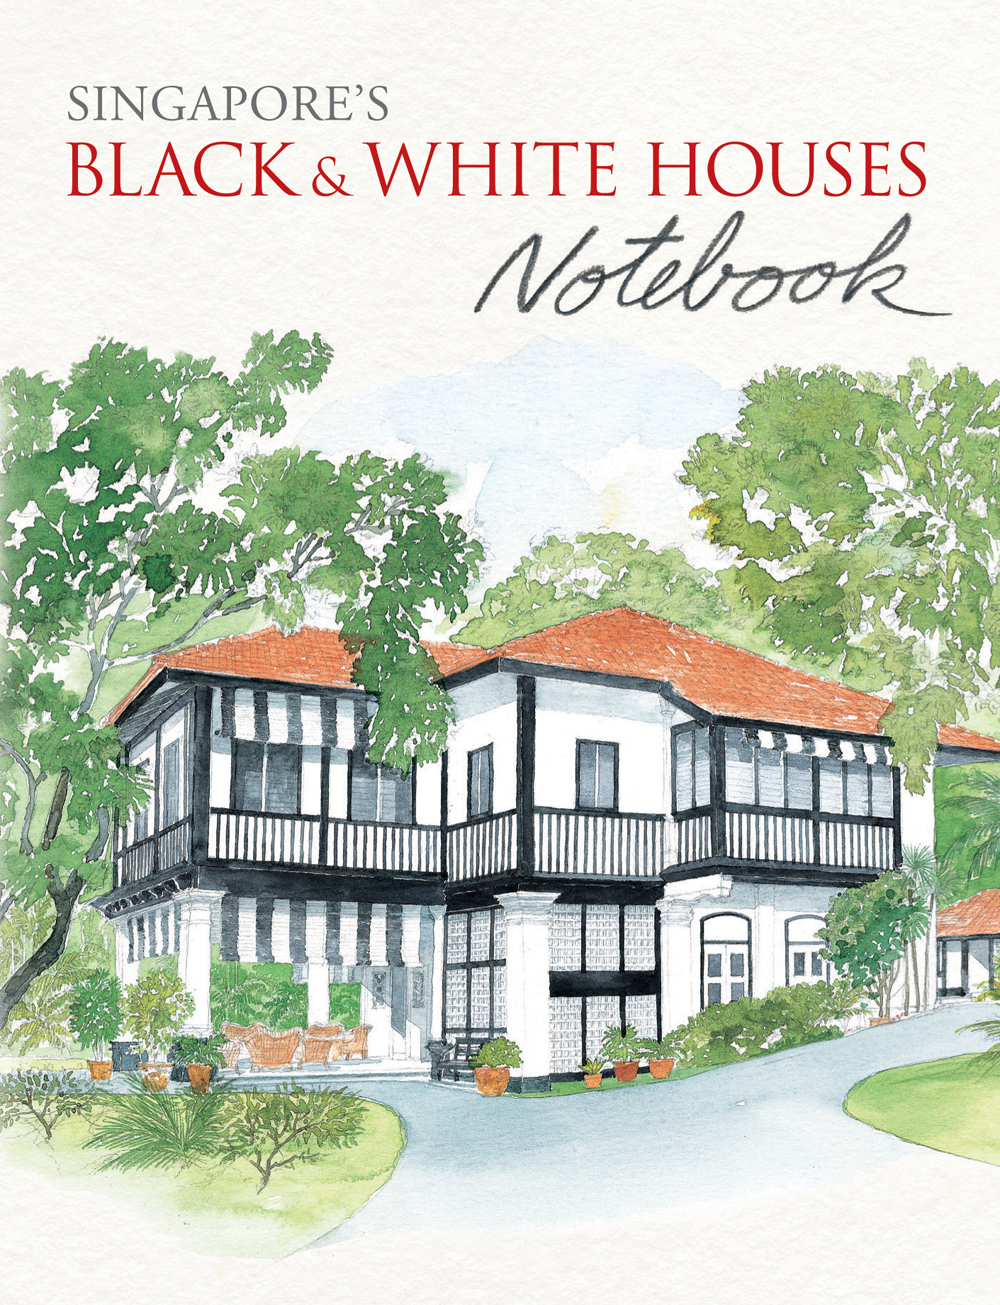 Singapore's Black and White Houses Notebook